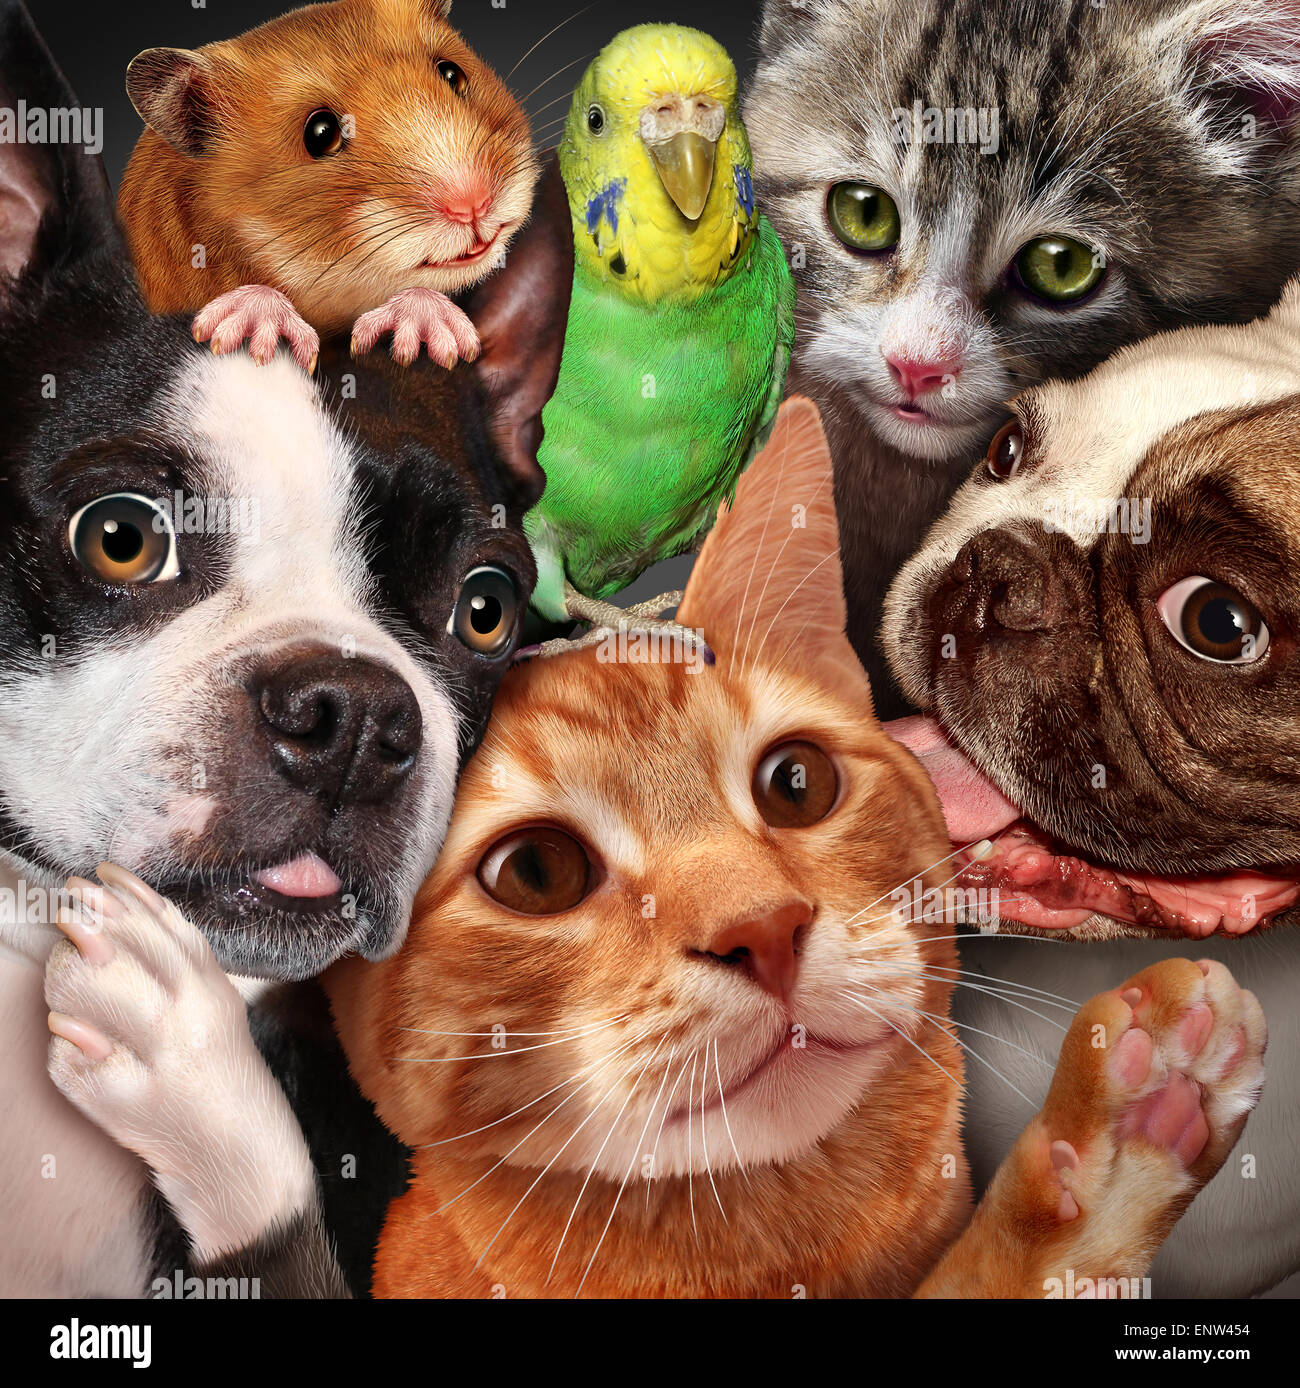 Cats And Dogs As Pets Together